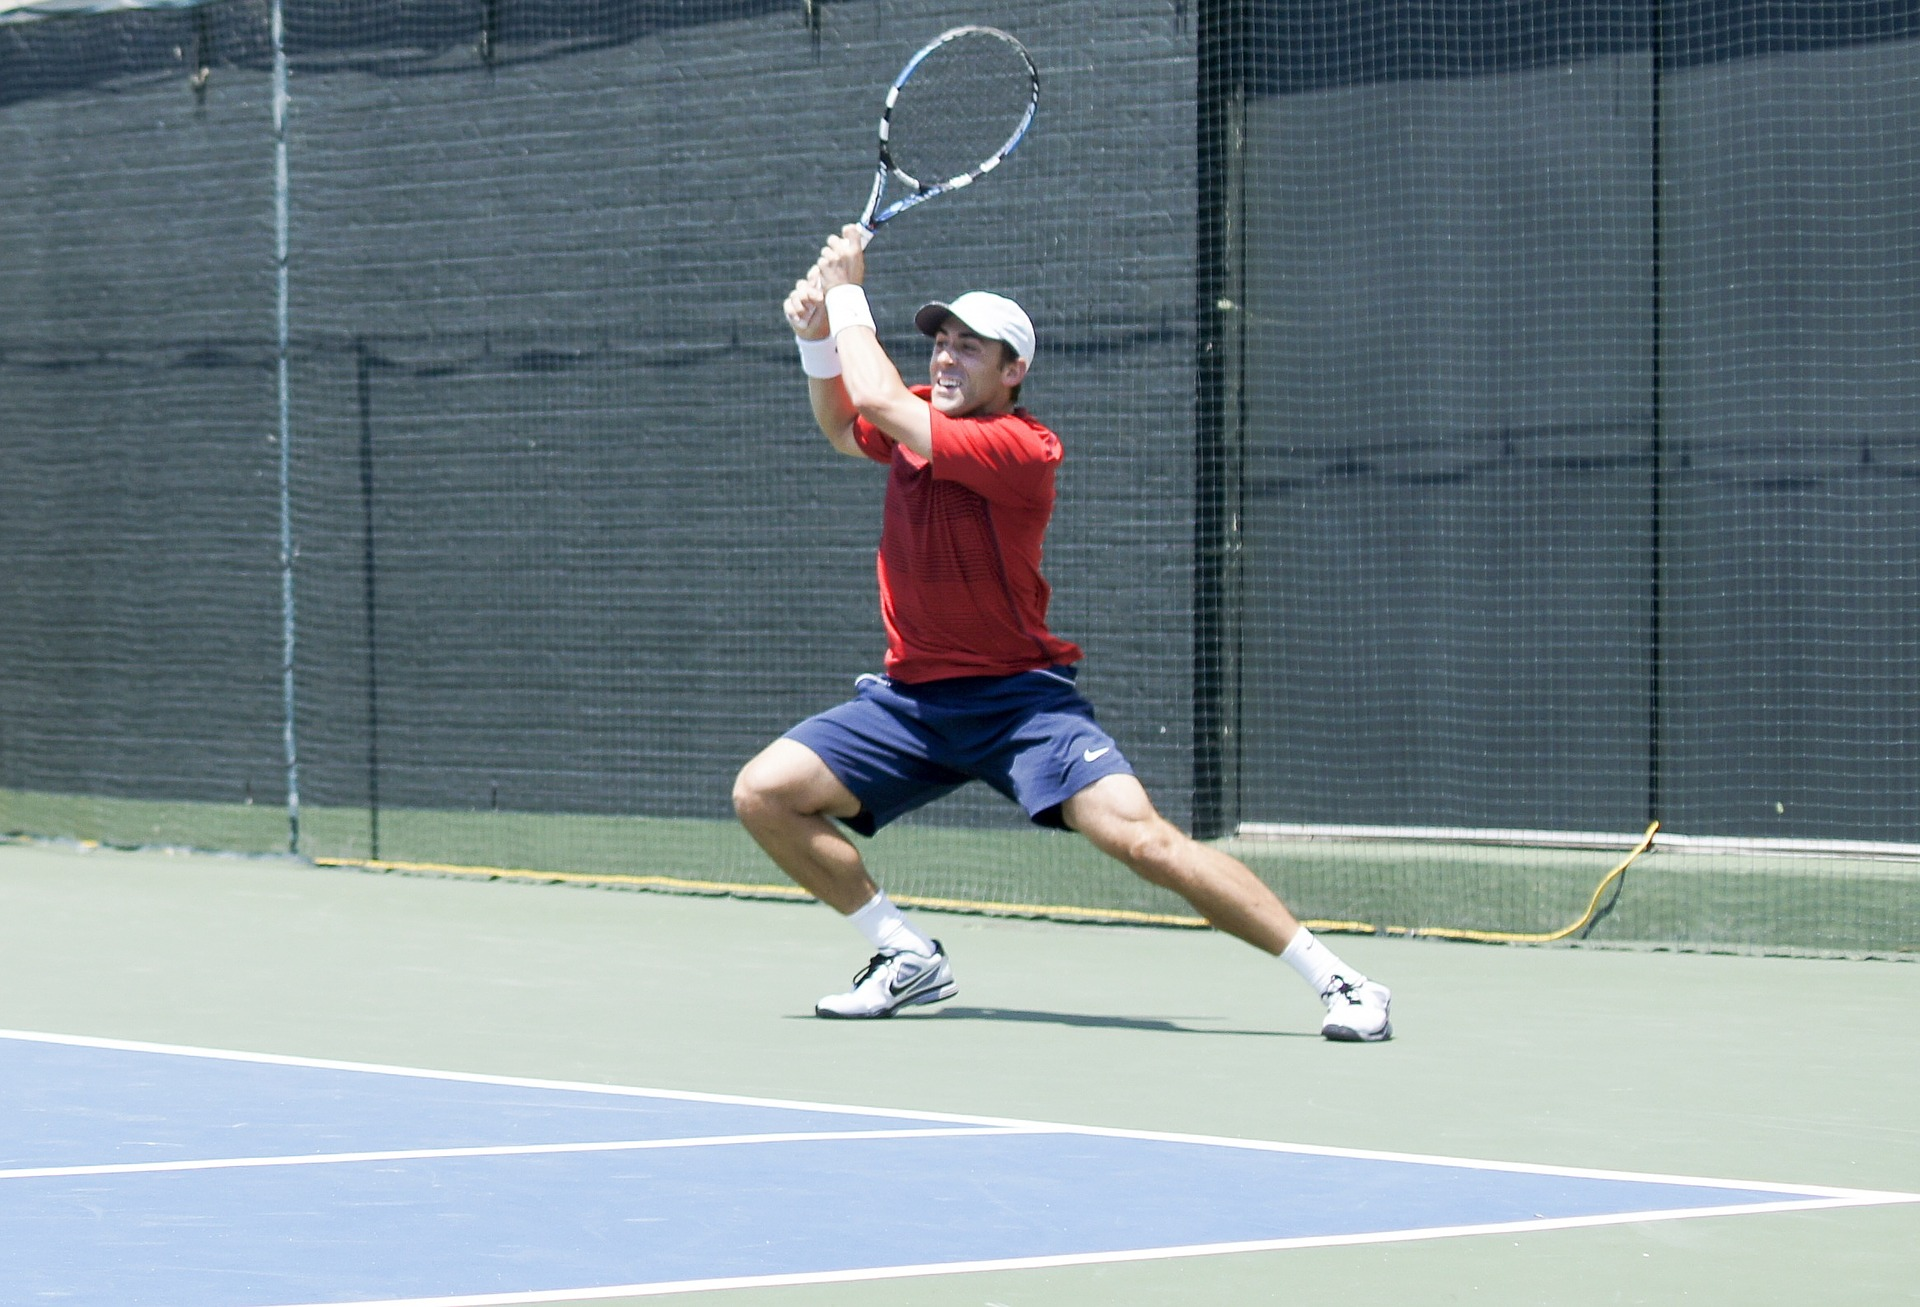 Tennis Player in athletic position